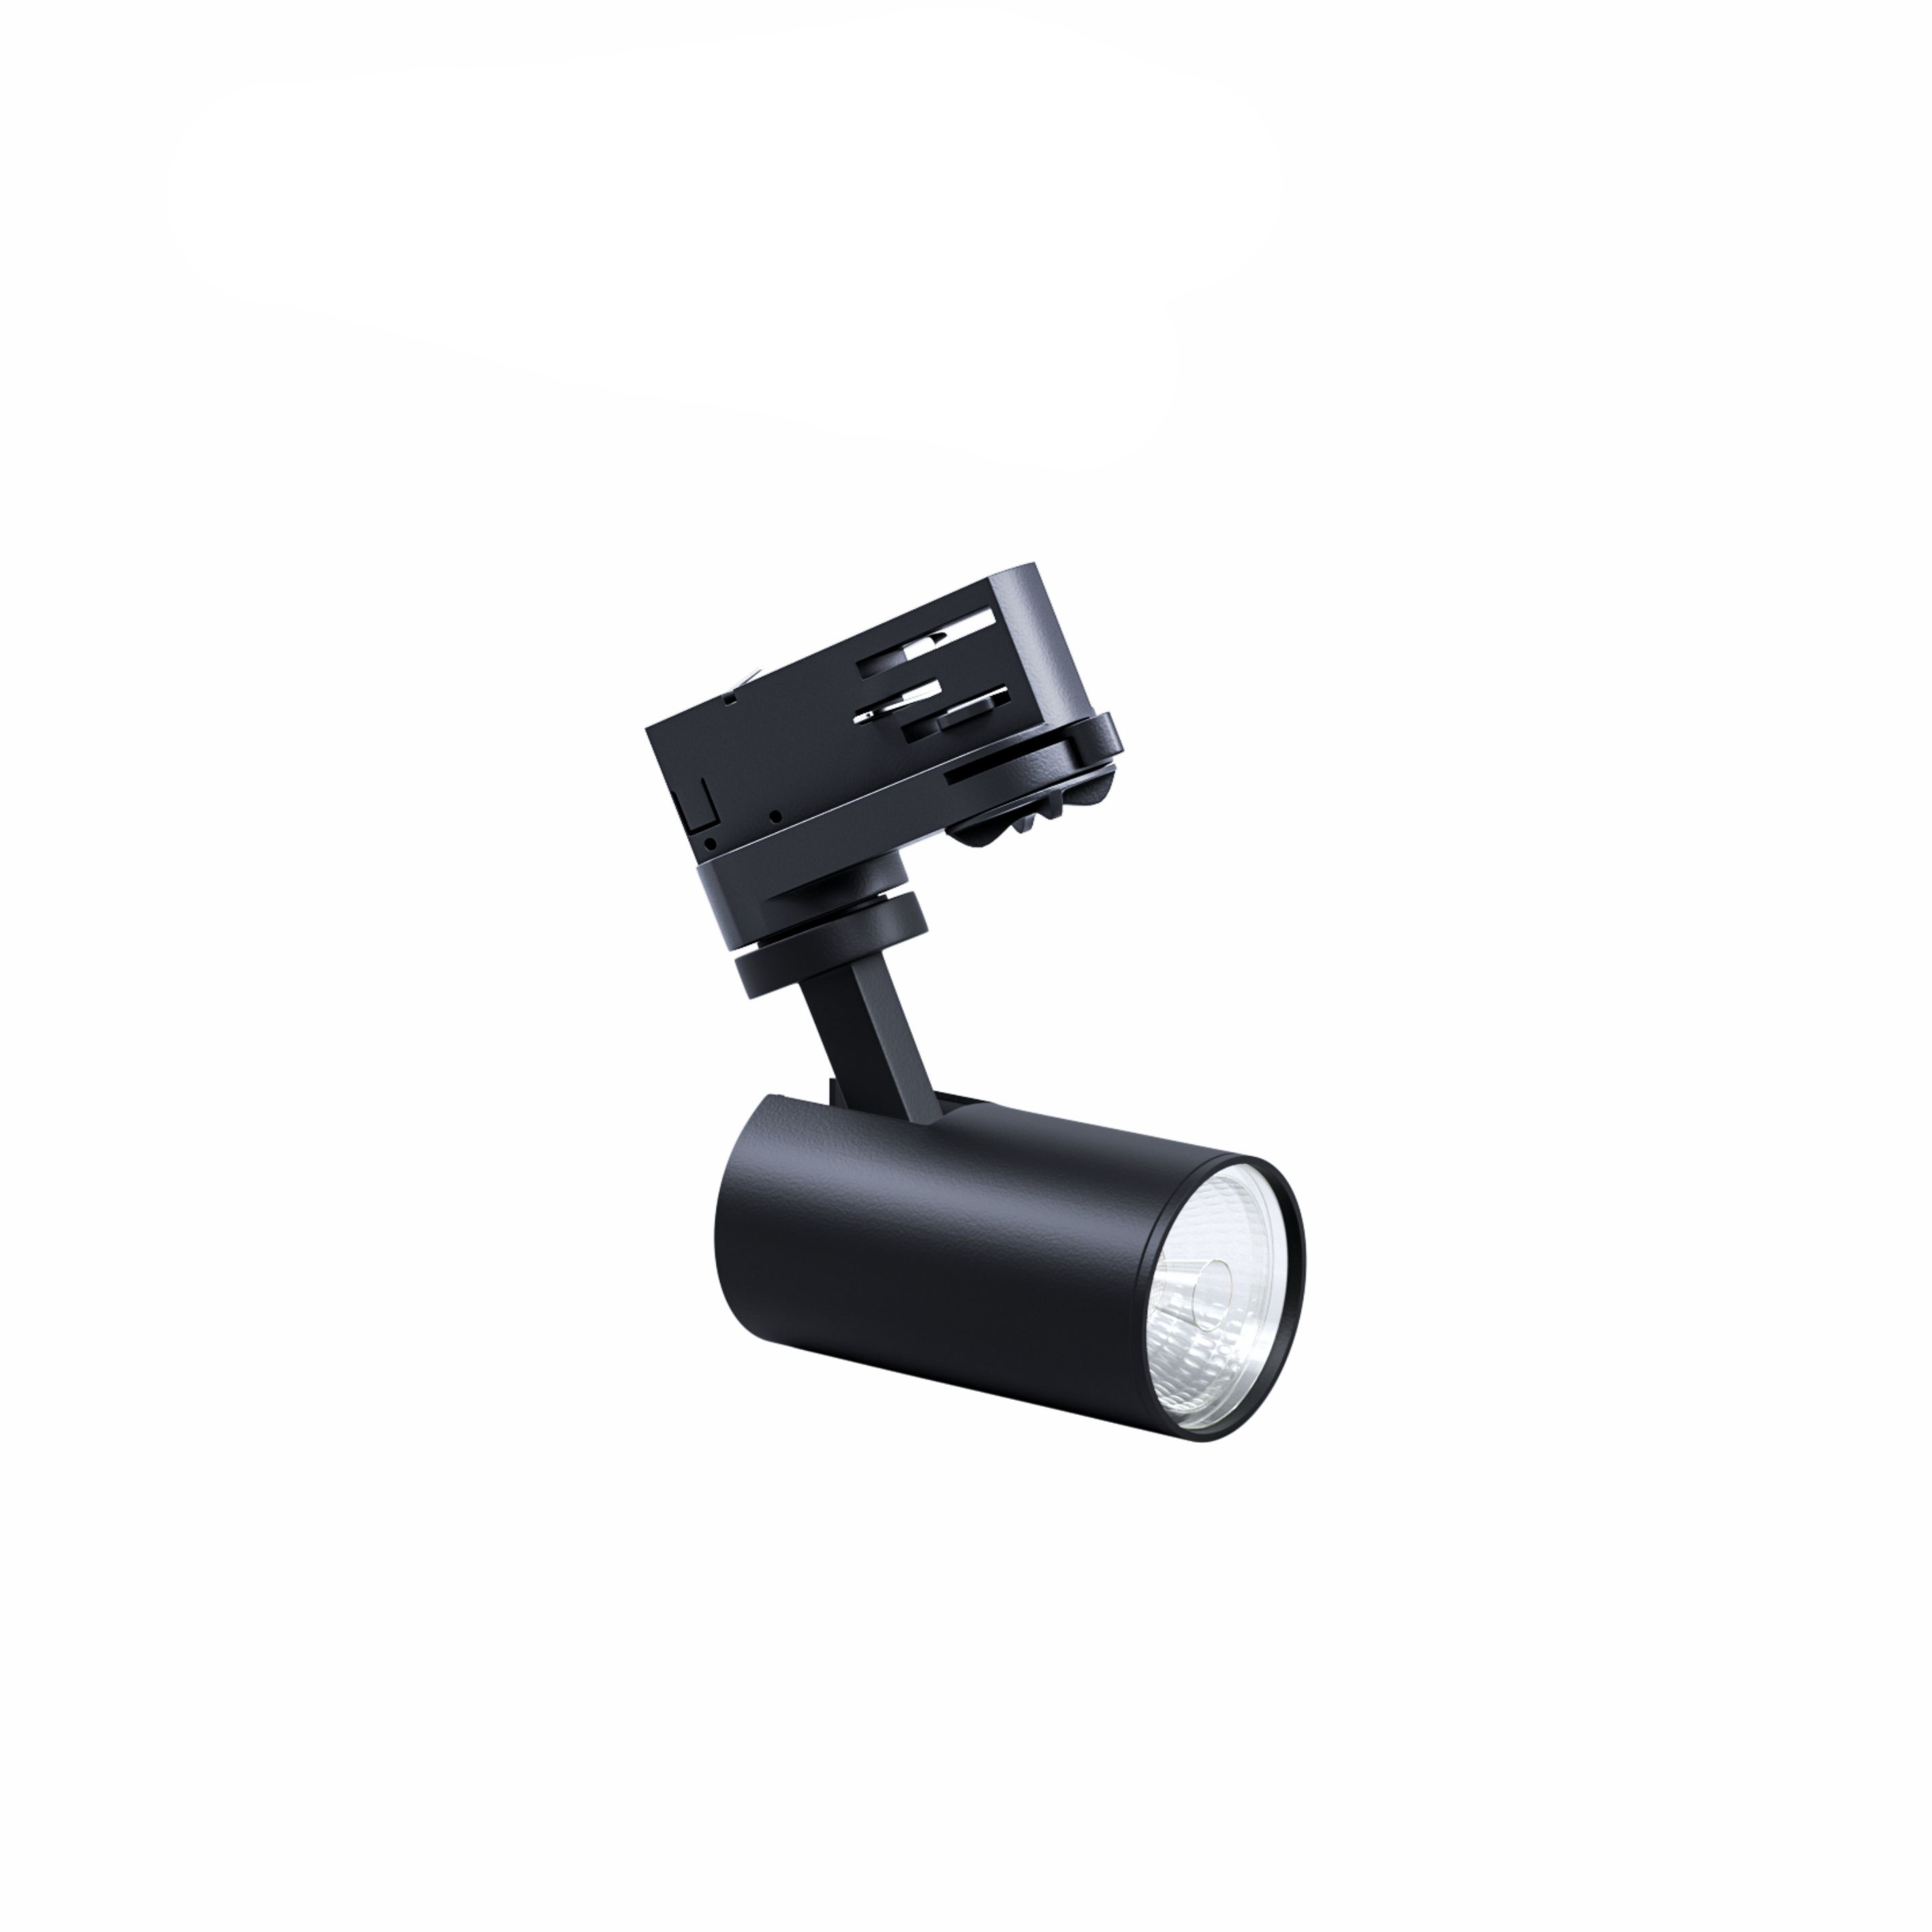 Tracklight PICOLO 9.5 Watt Beneito Faure en vente chez CONNECTILED